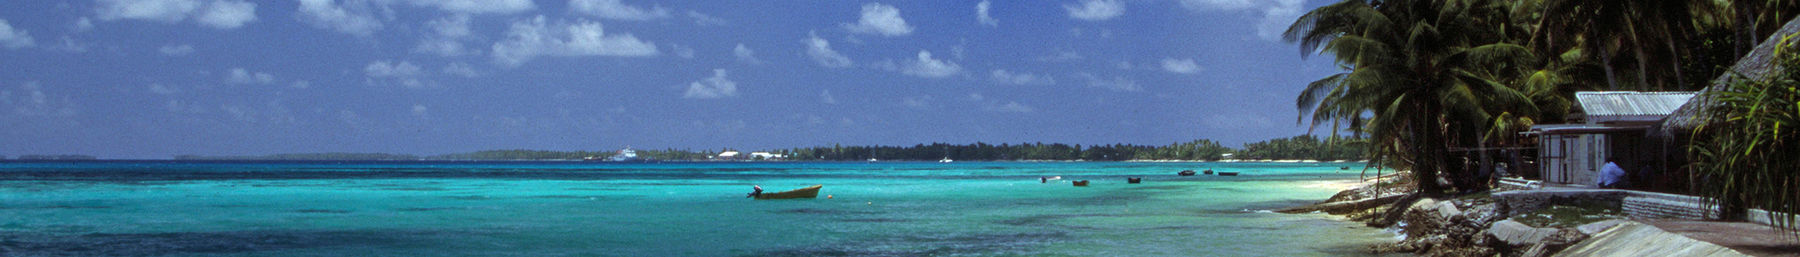 Beach in Funafuti